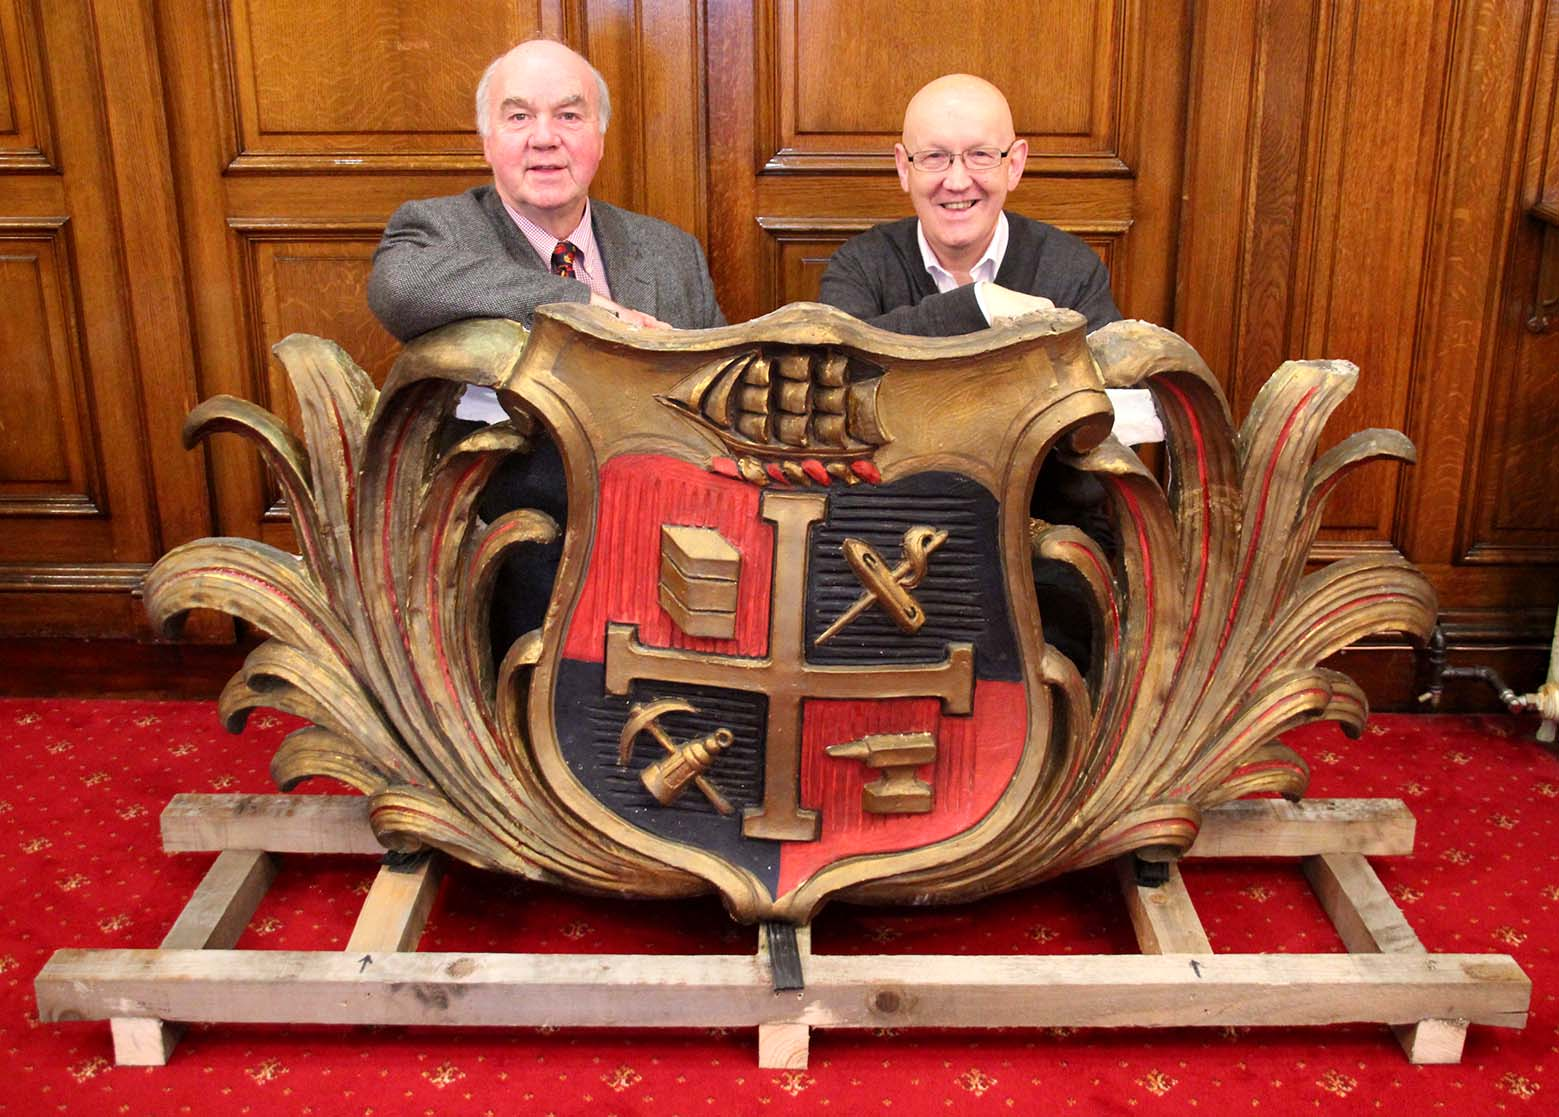 Councillor Graham Shuttleworth, Chair of Chadderton District Partnership, and Councillor Eddie Moores, Deputy Cabinet Member for Economy and Enterprise and Chadderton Central ward councillor, with the restored Chadderton crest.